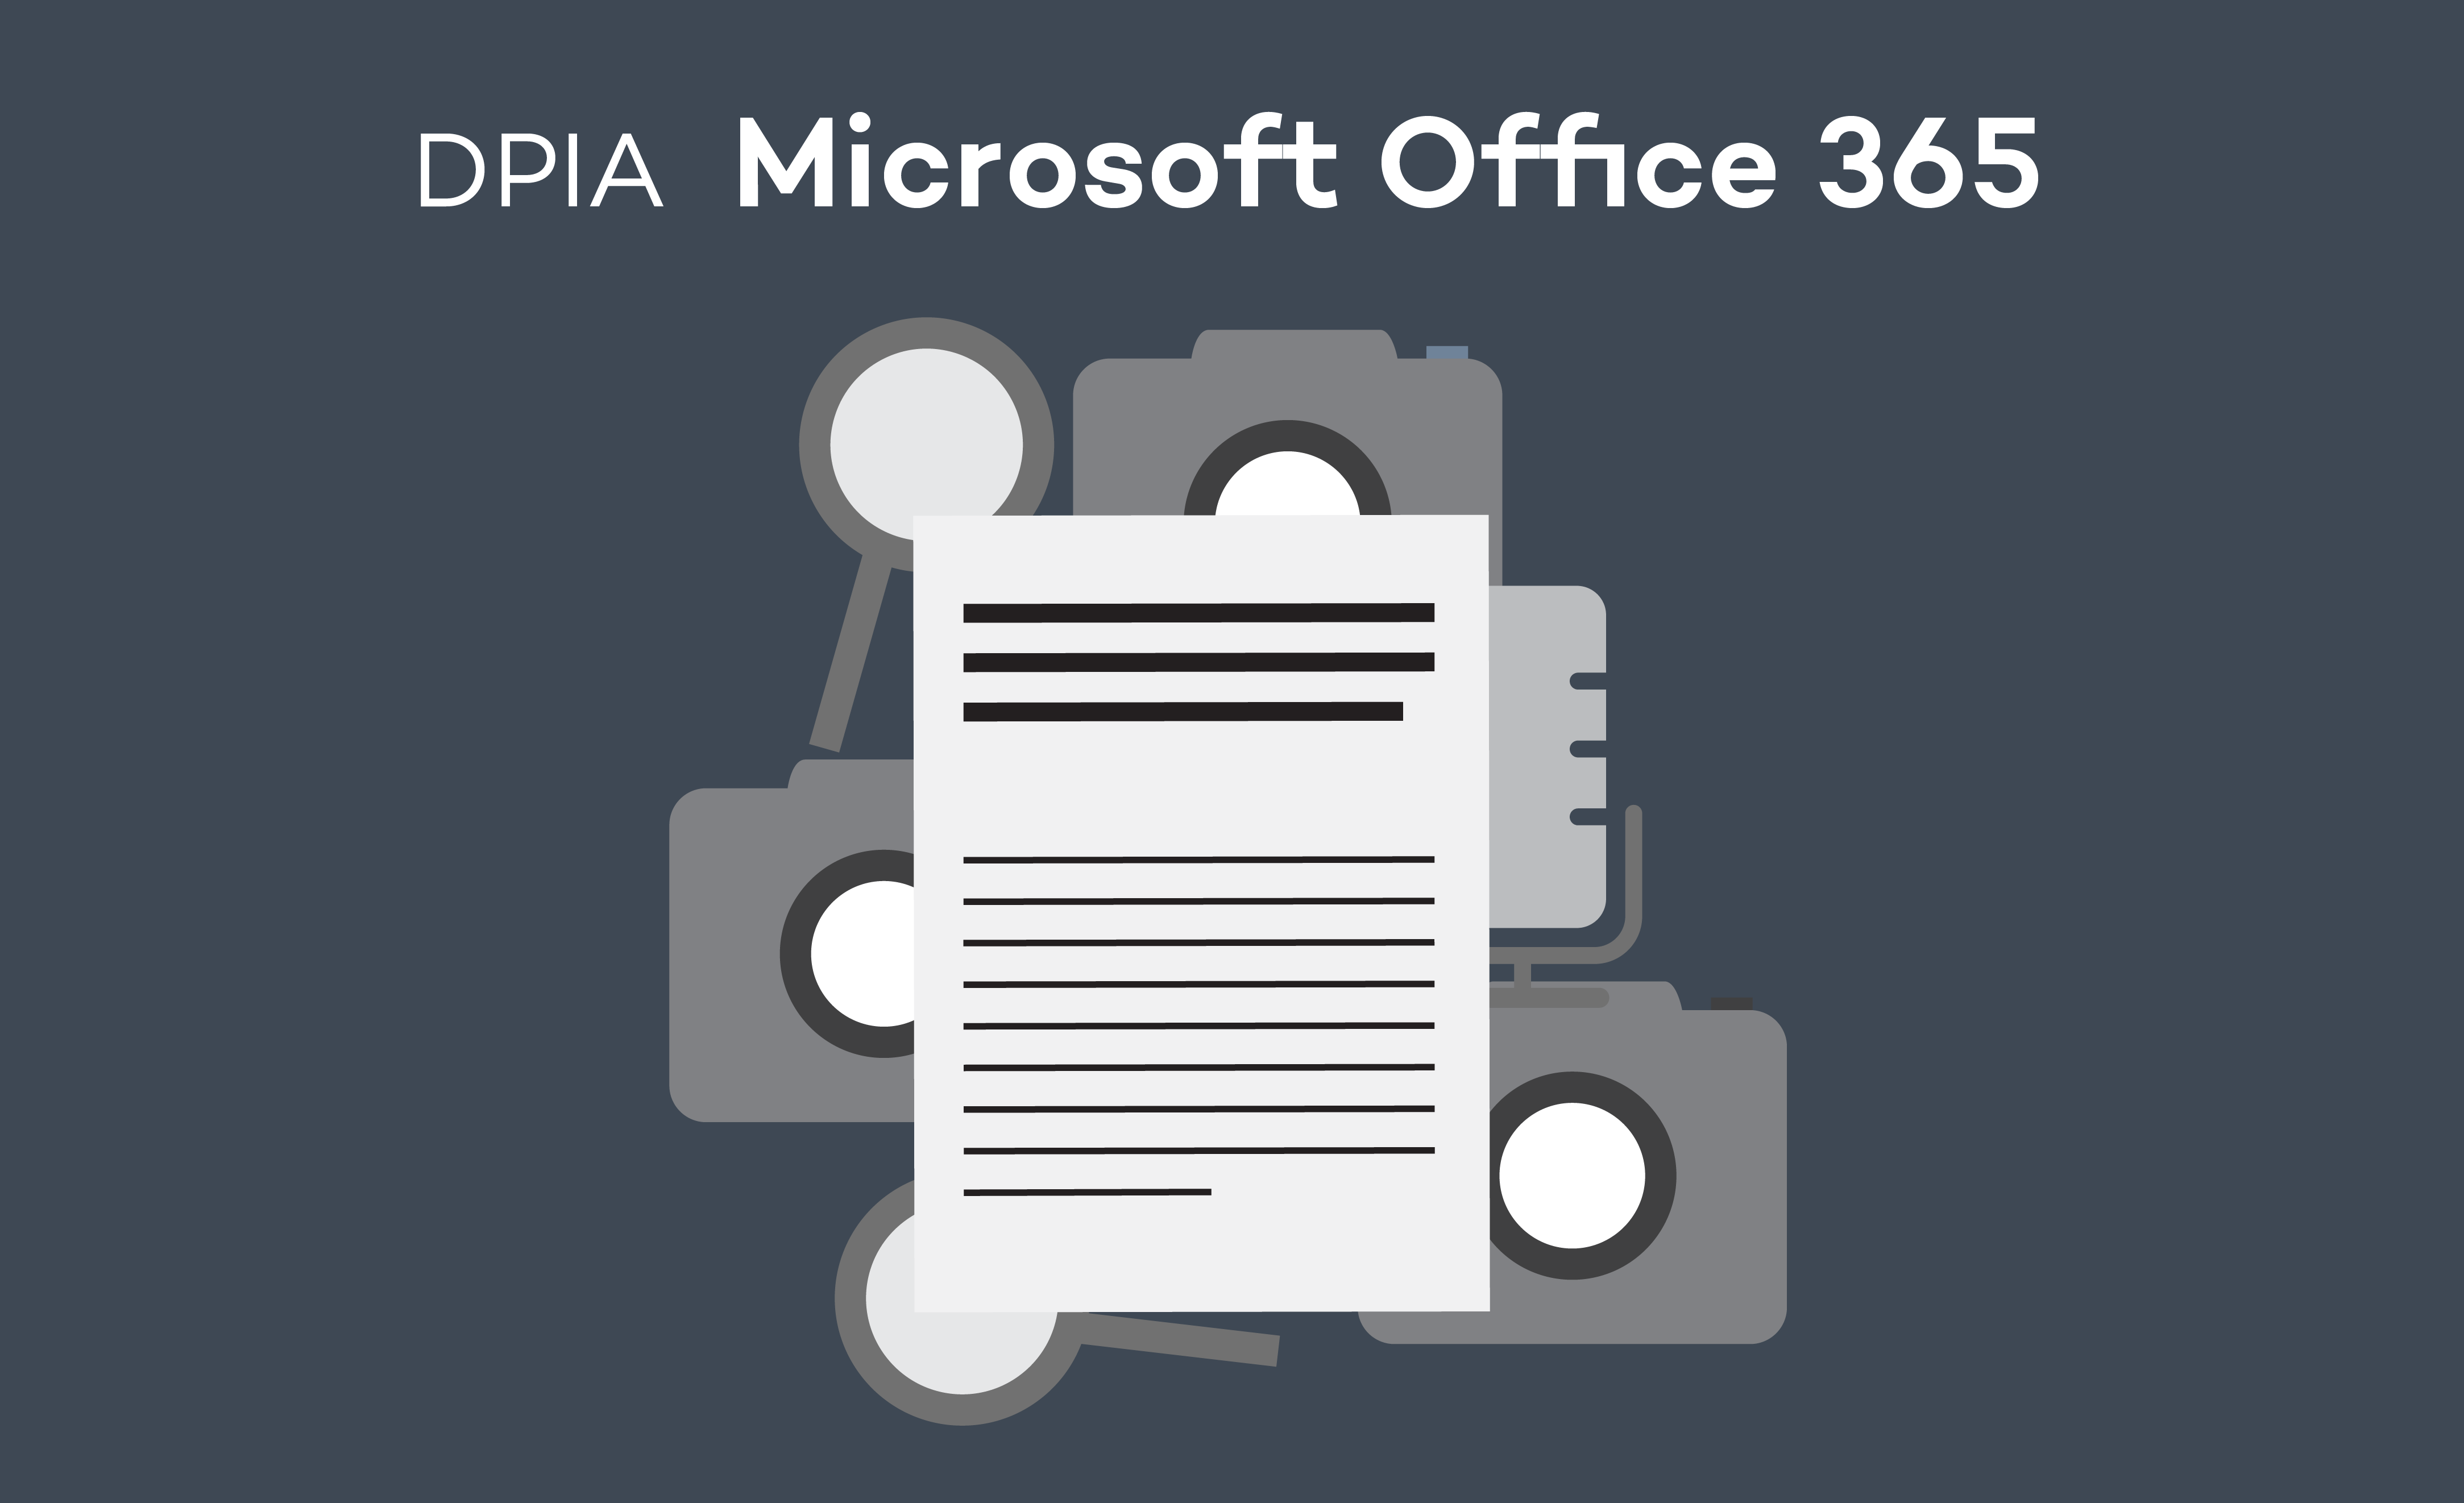 Assessment MS Office 365 Web & apps: Microsoft promises measures to mitigate 6 high privacy risks